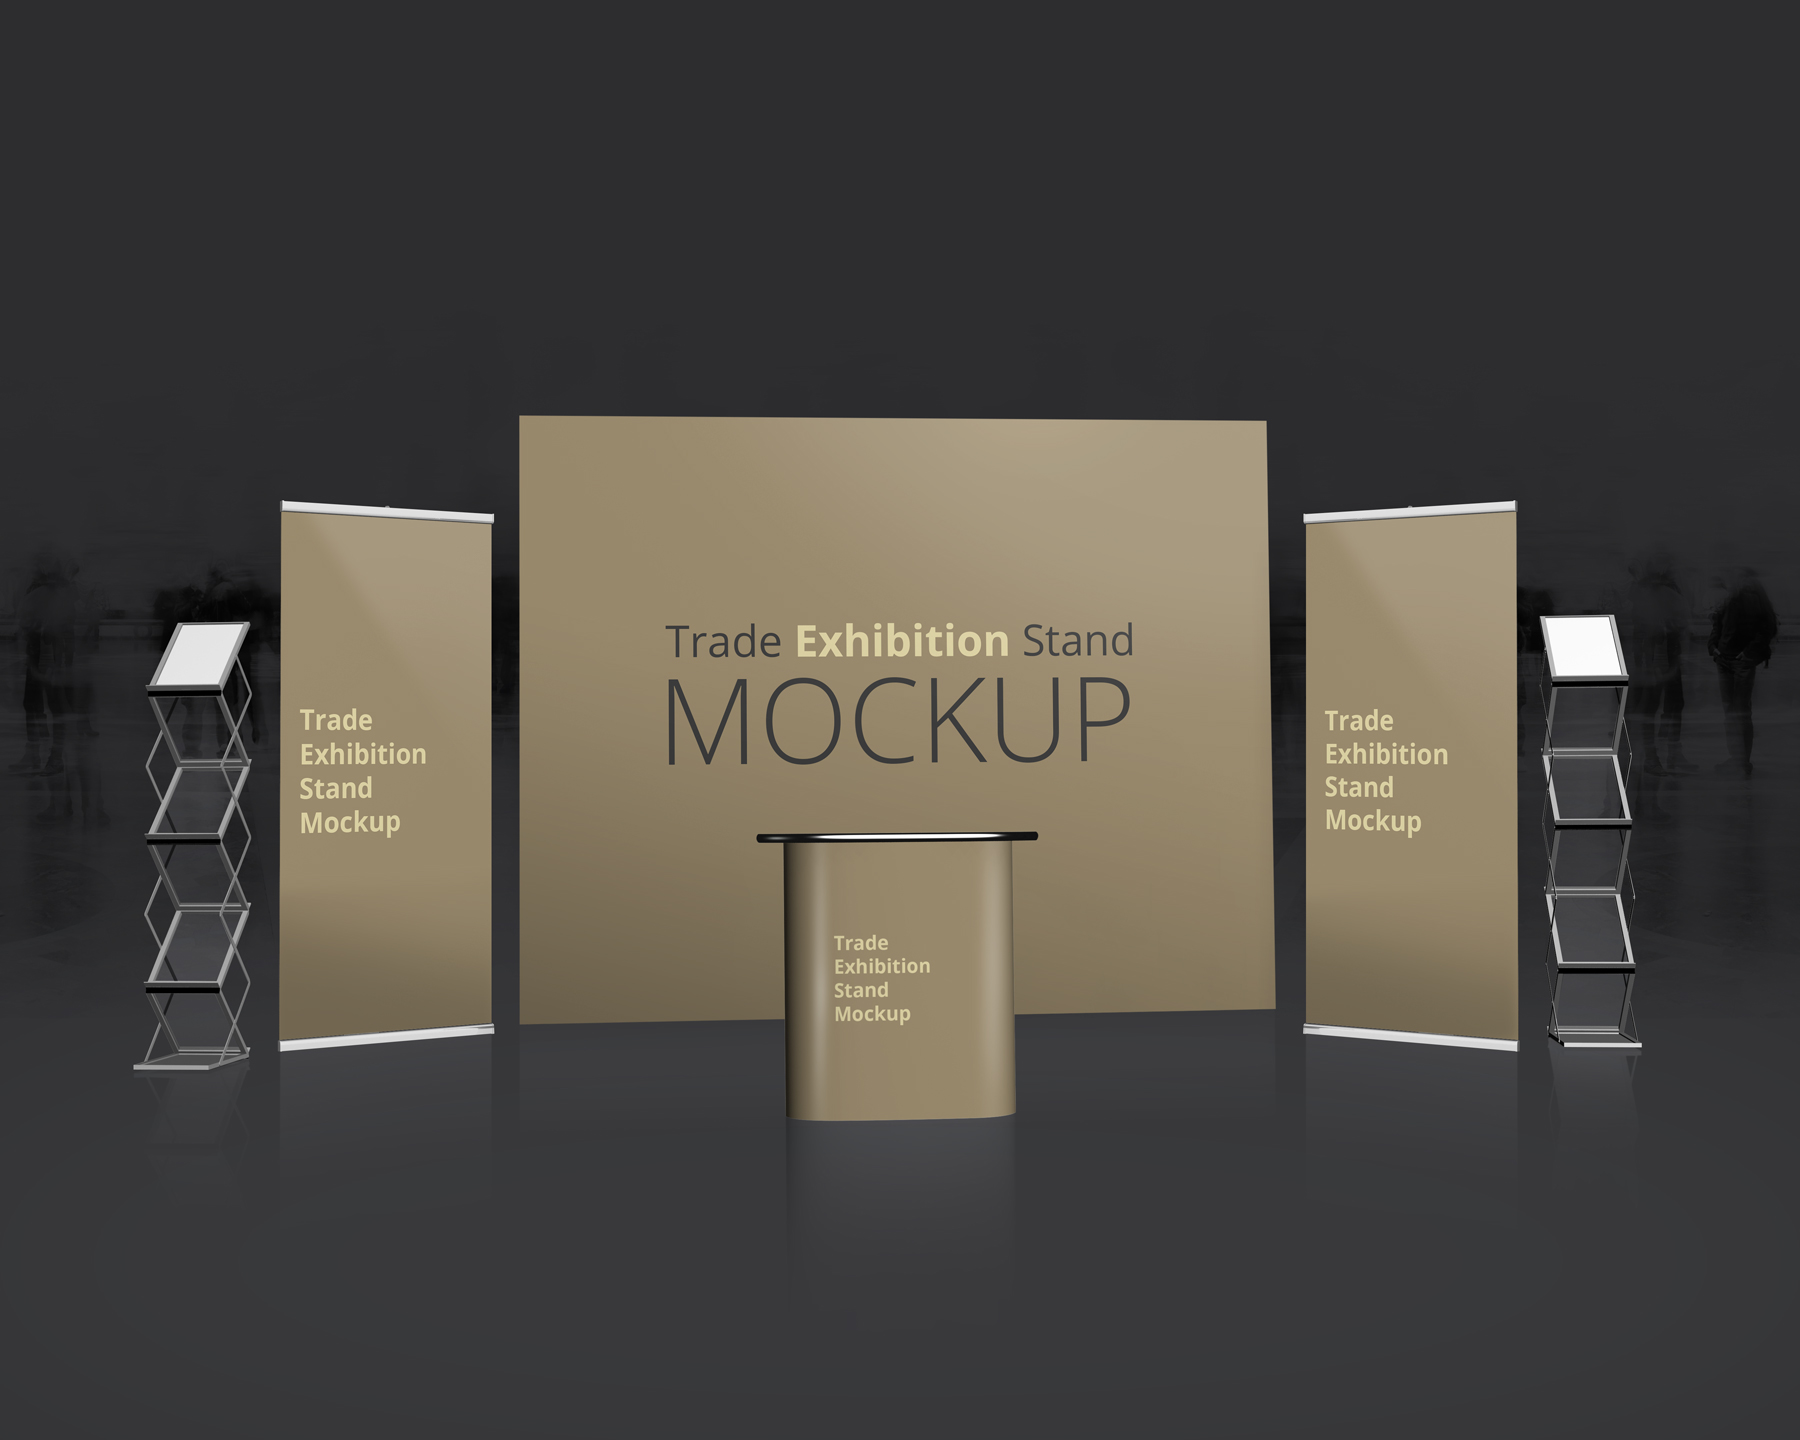 stand up display mockup